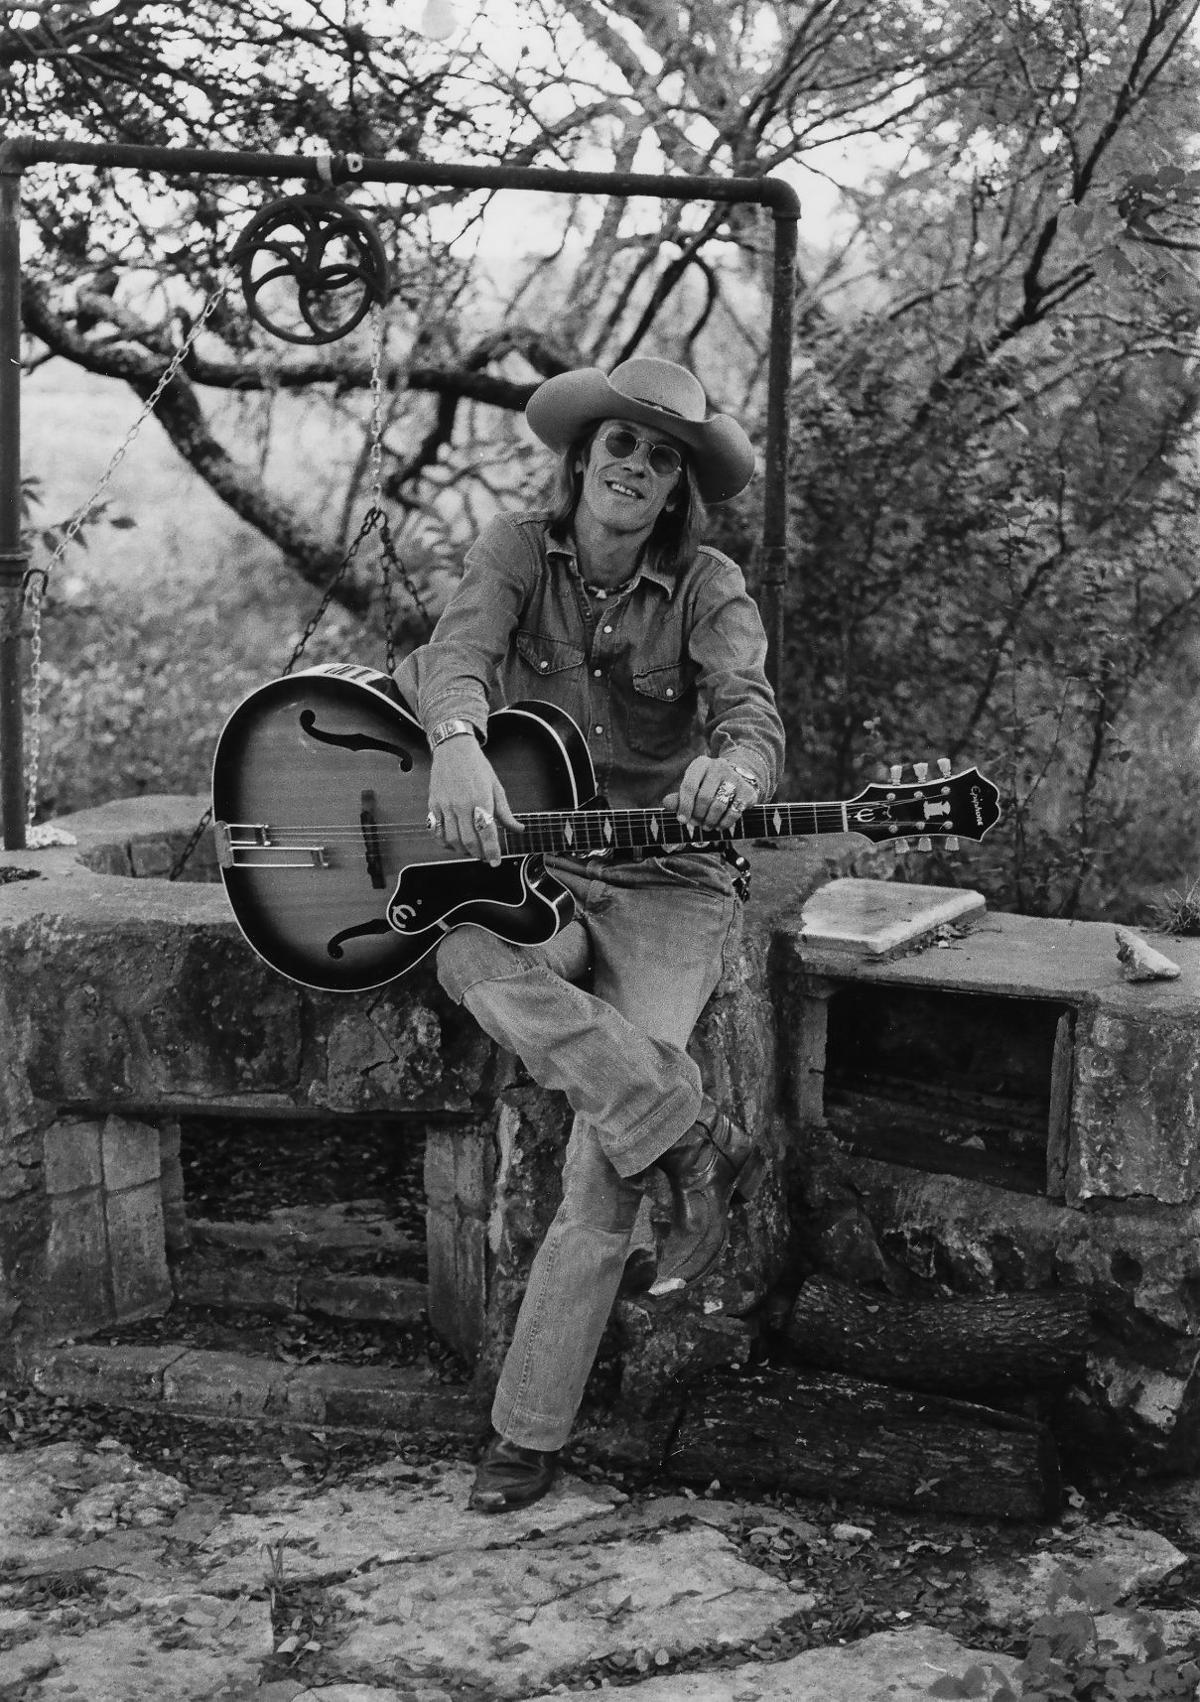 Sir Doug Sahm